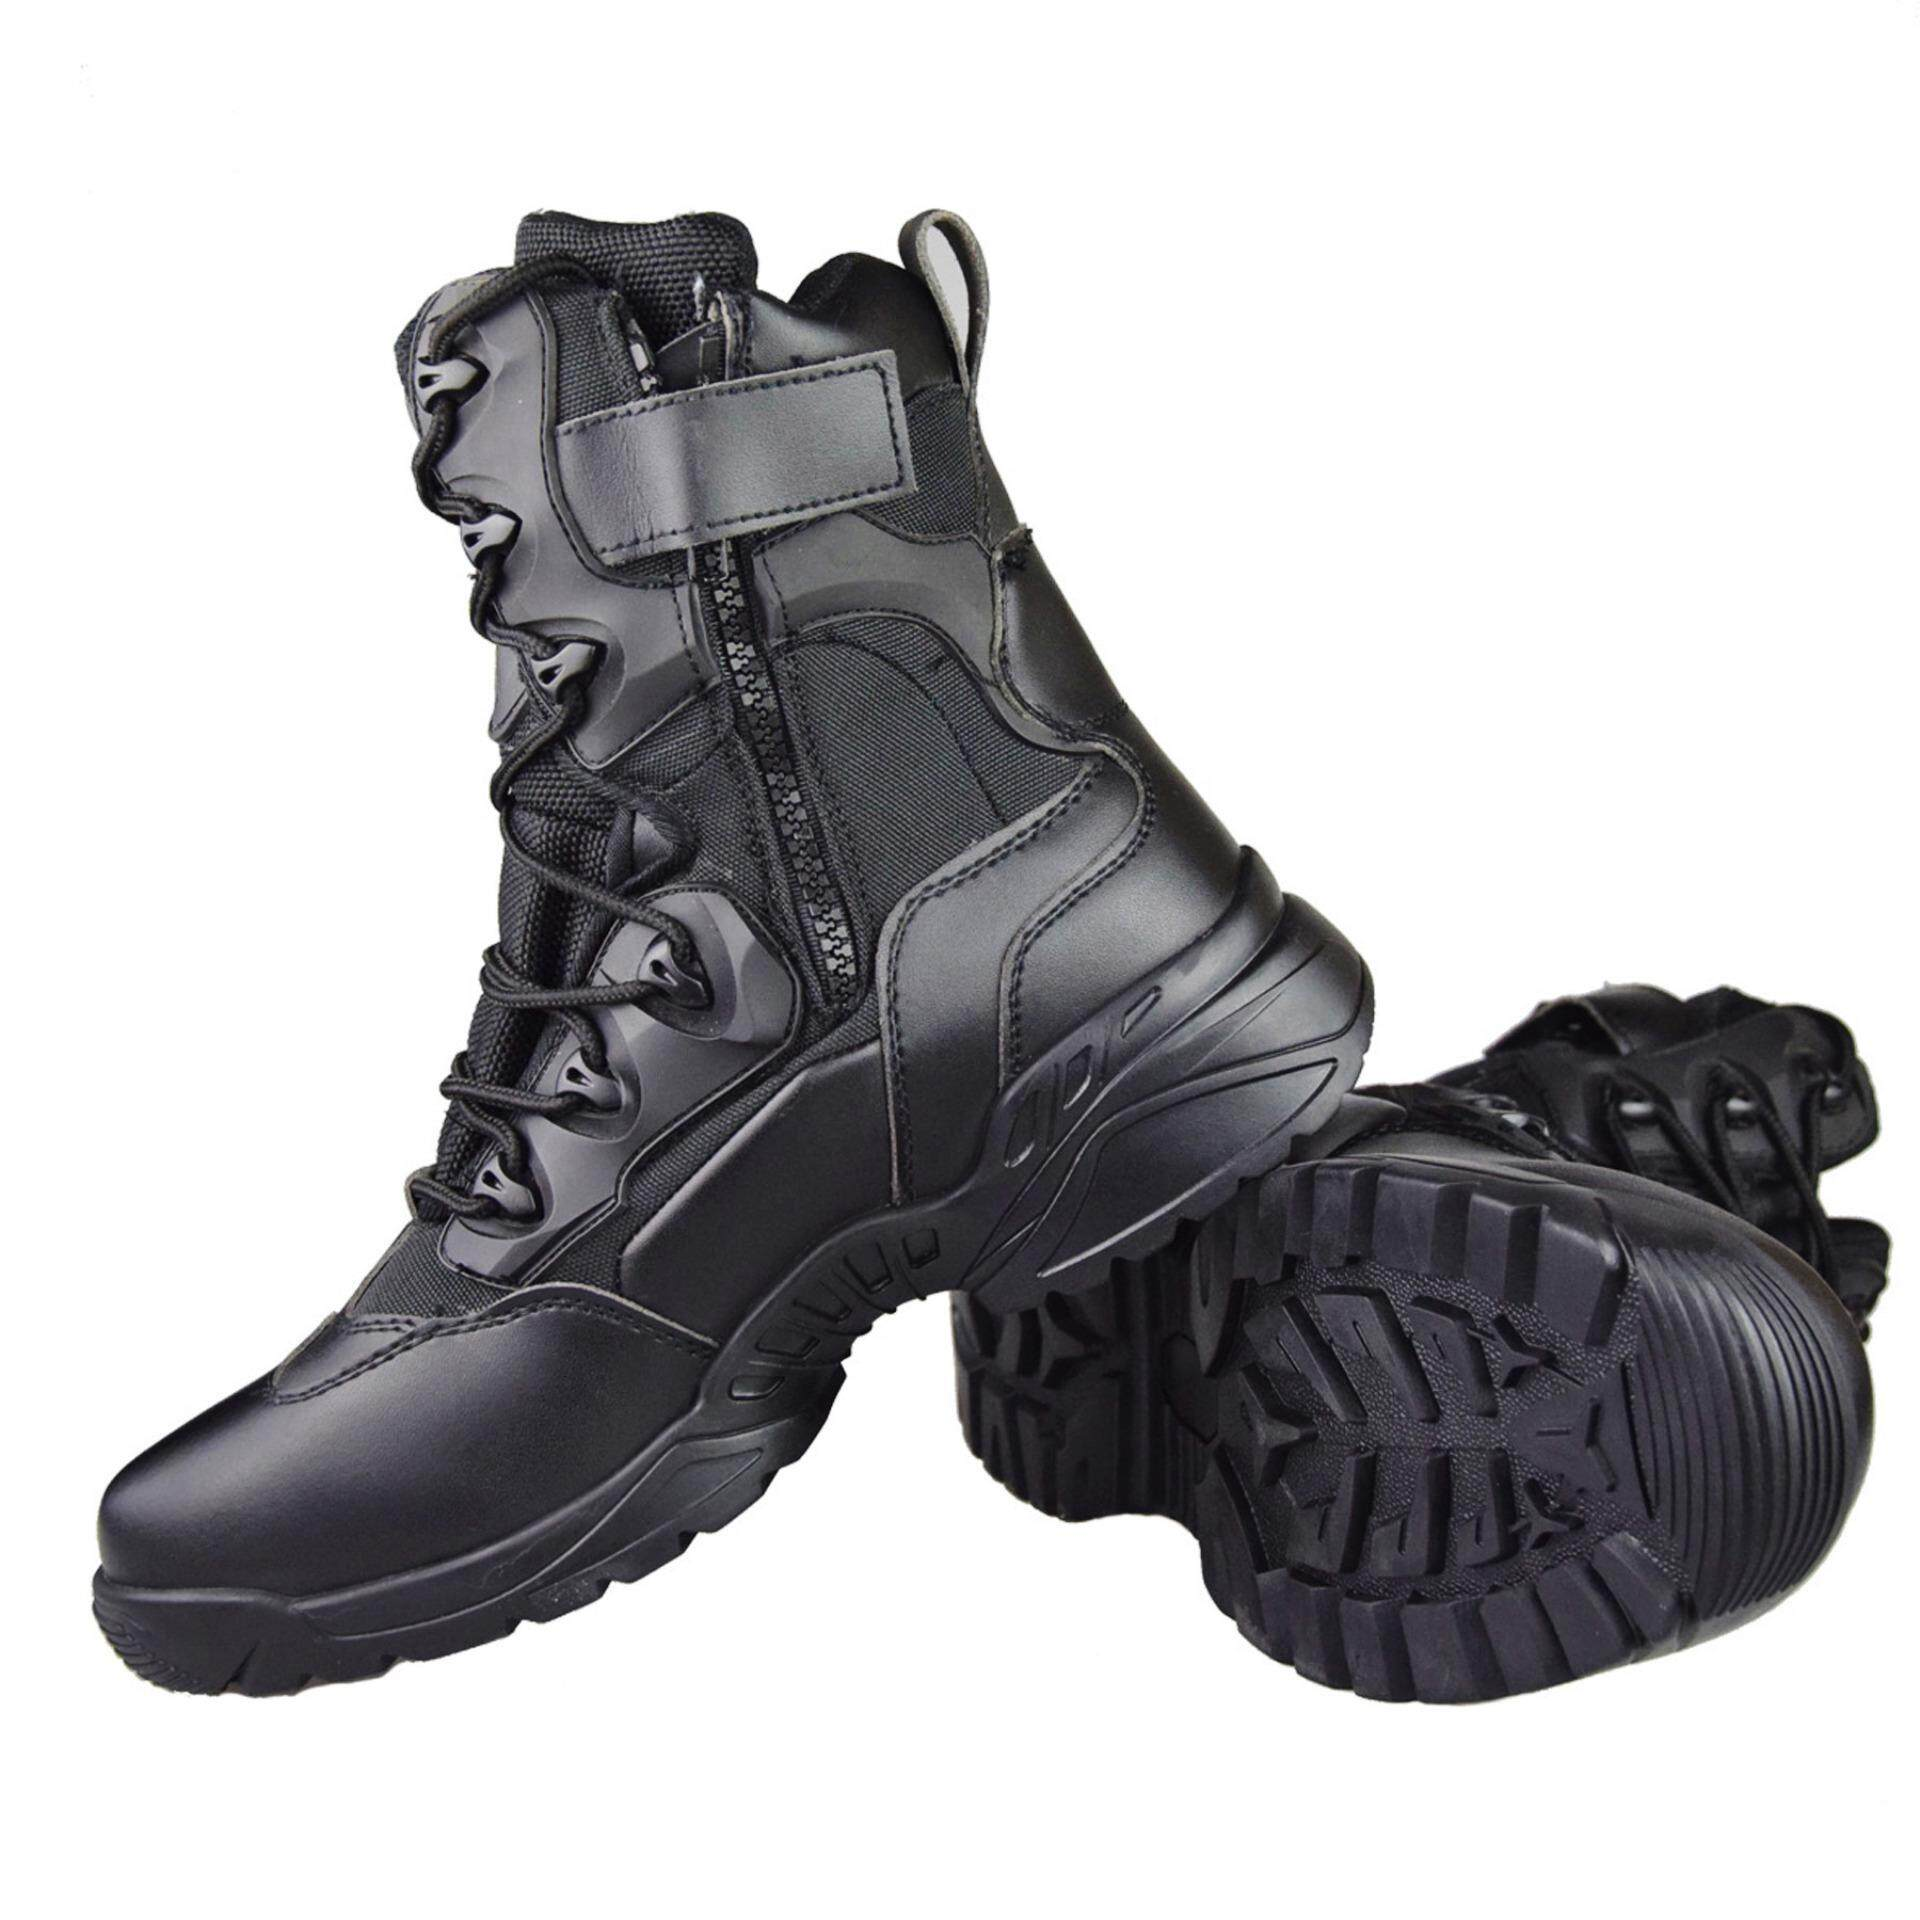 Intelligent Men Boots Male Rubber Combat Ankle Work Safety Shoes Size 40-46 Autumn Winter Snow Boots Men Sneakers Basic Boots